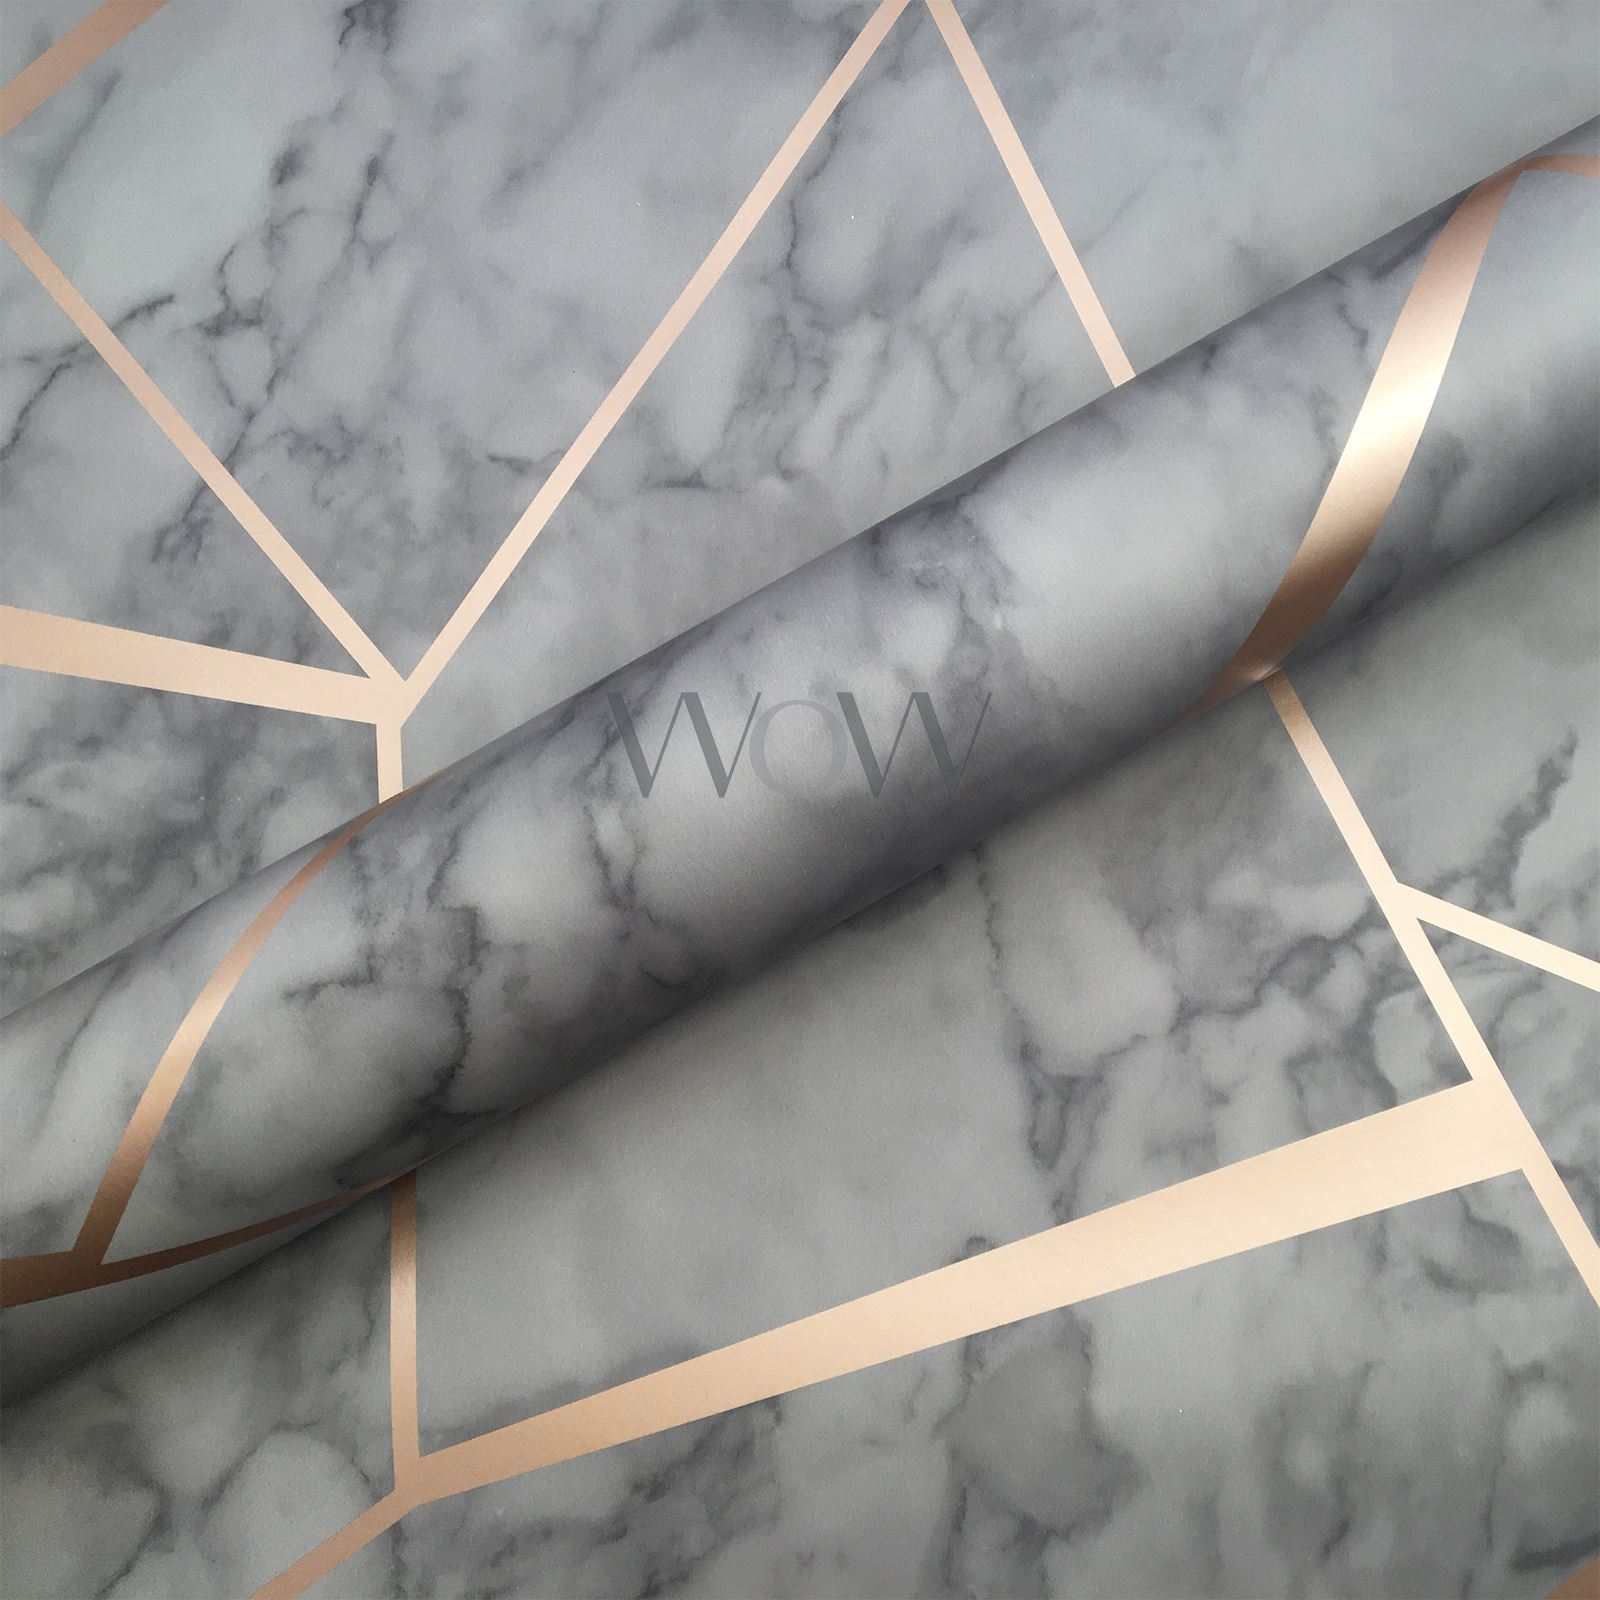 FINE-DECOR-METALLIC-GEOMETRIC-PLAIN-MARBLE-WALLPAPER-ROSE-GOLD-COPPER-SILVER thumbnail 4